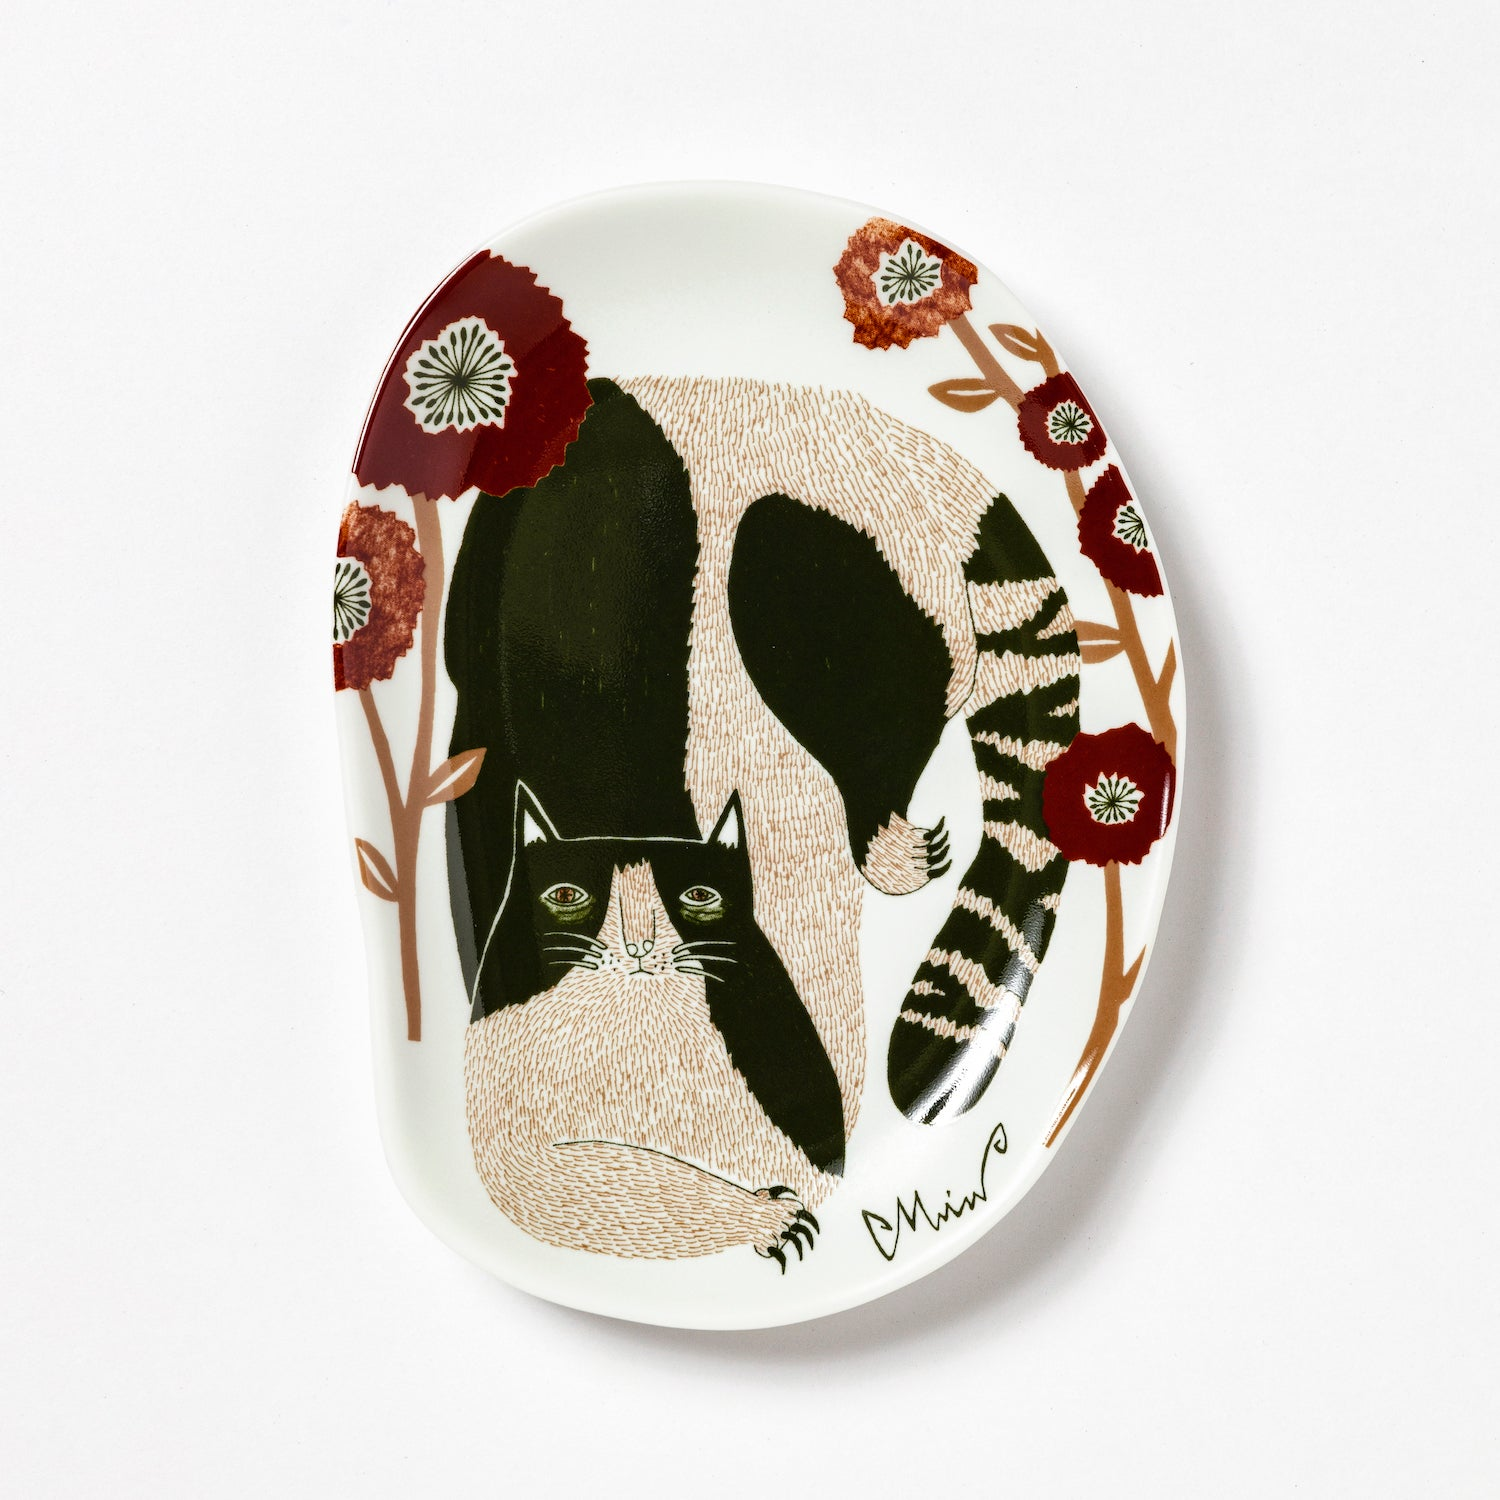 森田Miw 插畫瓷碟 - 貓*Morita Miw Decorative Plate - Cat